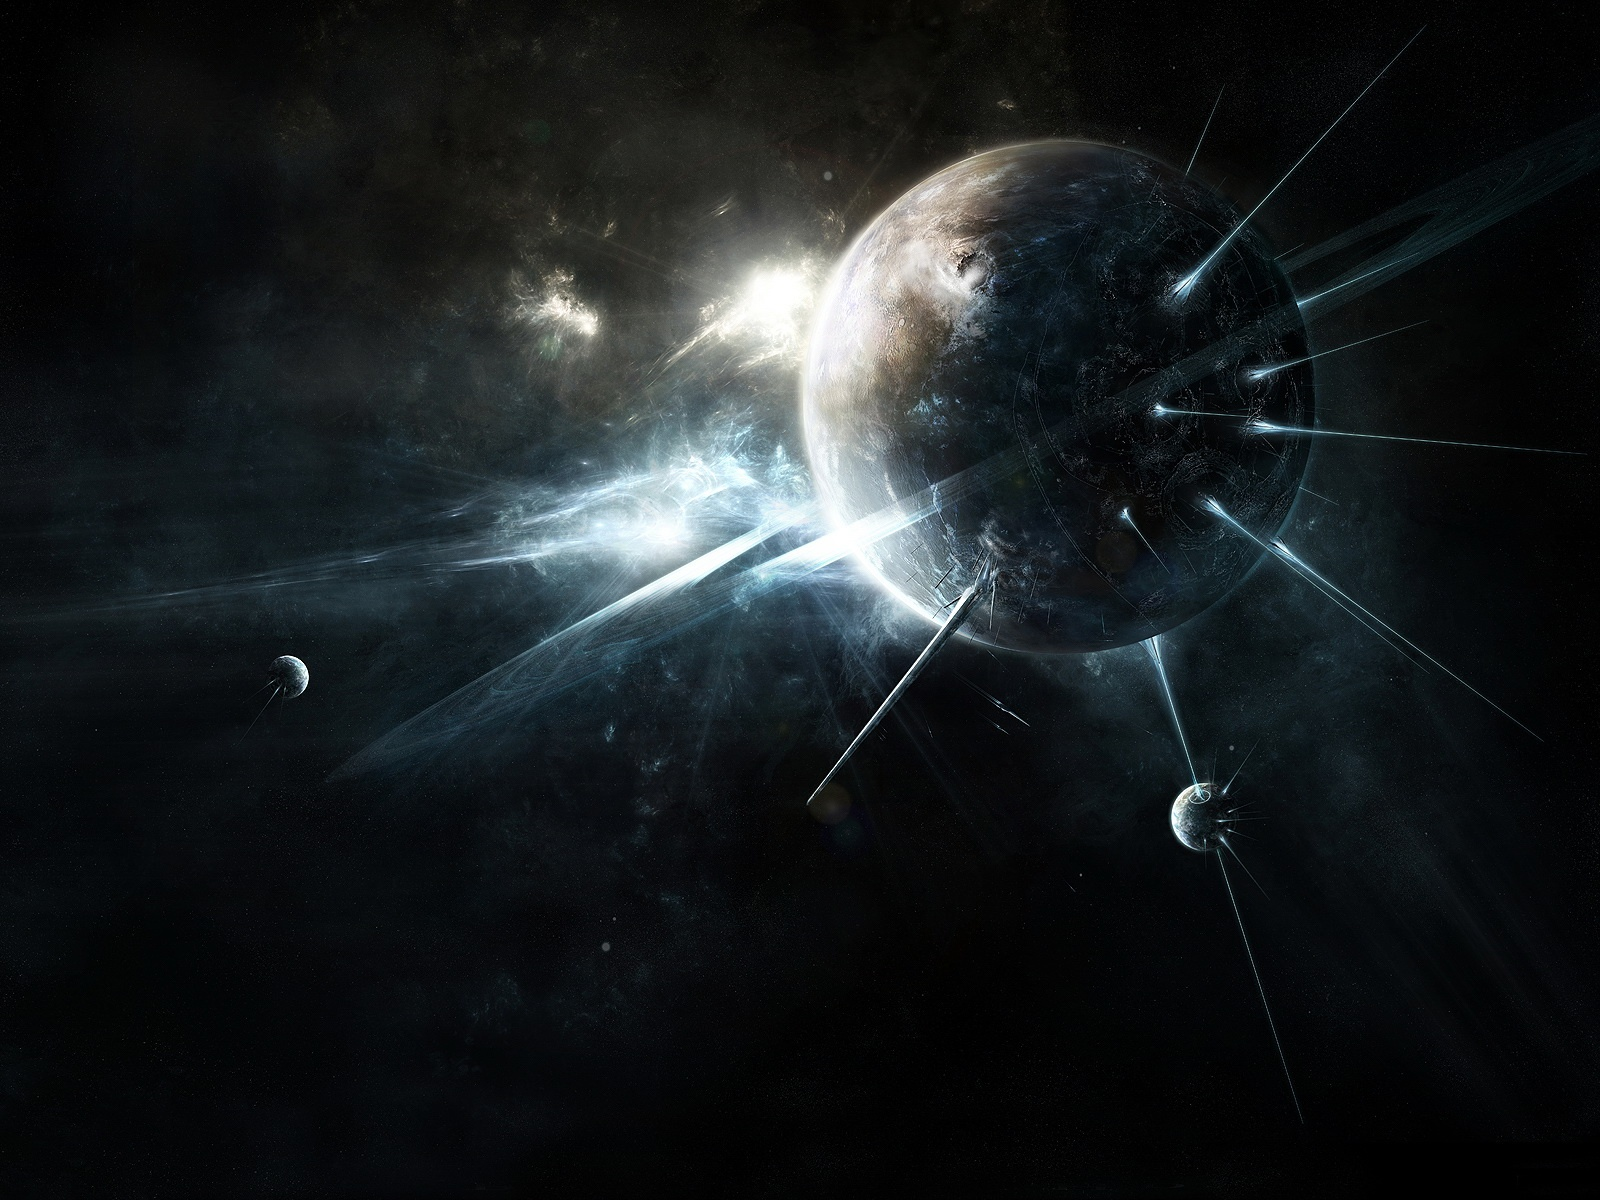 Dark Space Abstract Wallpapers